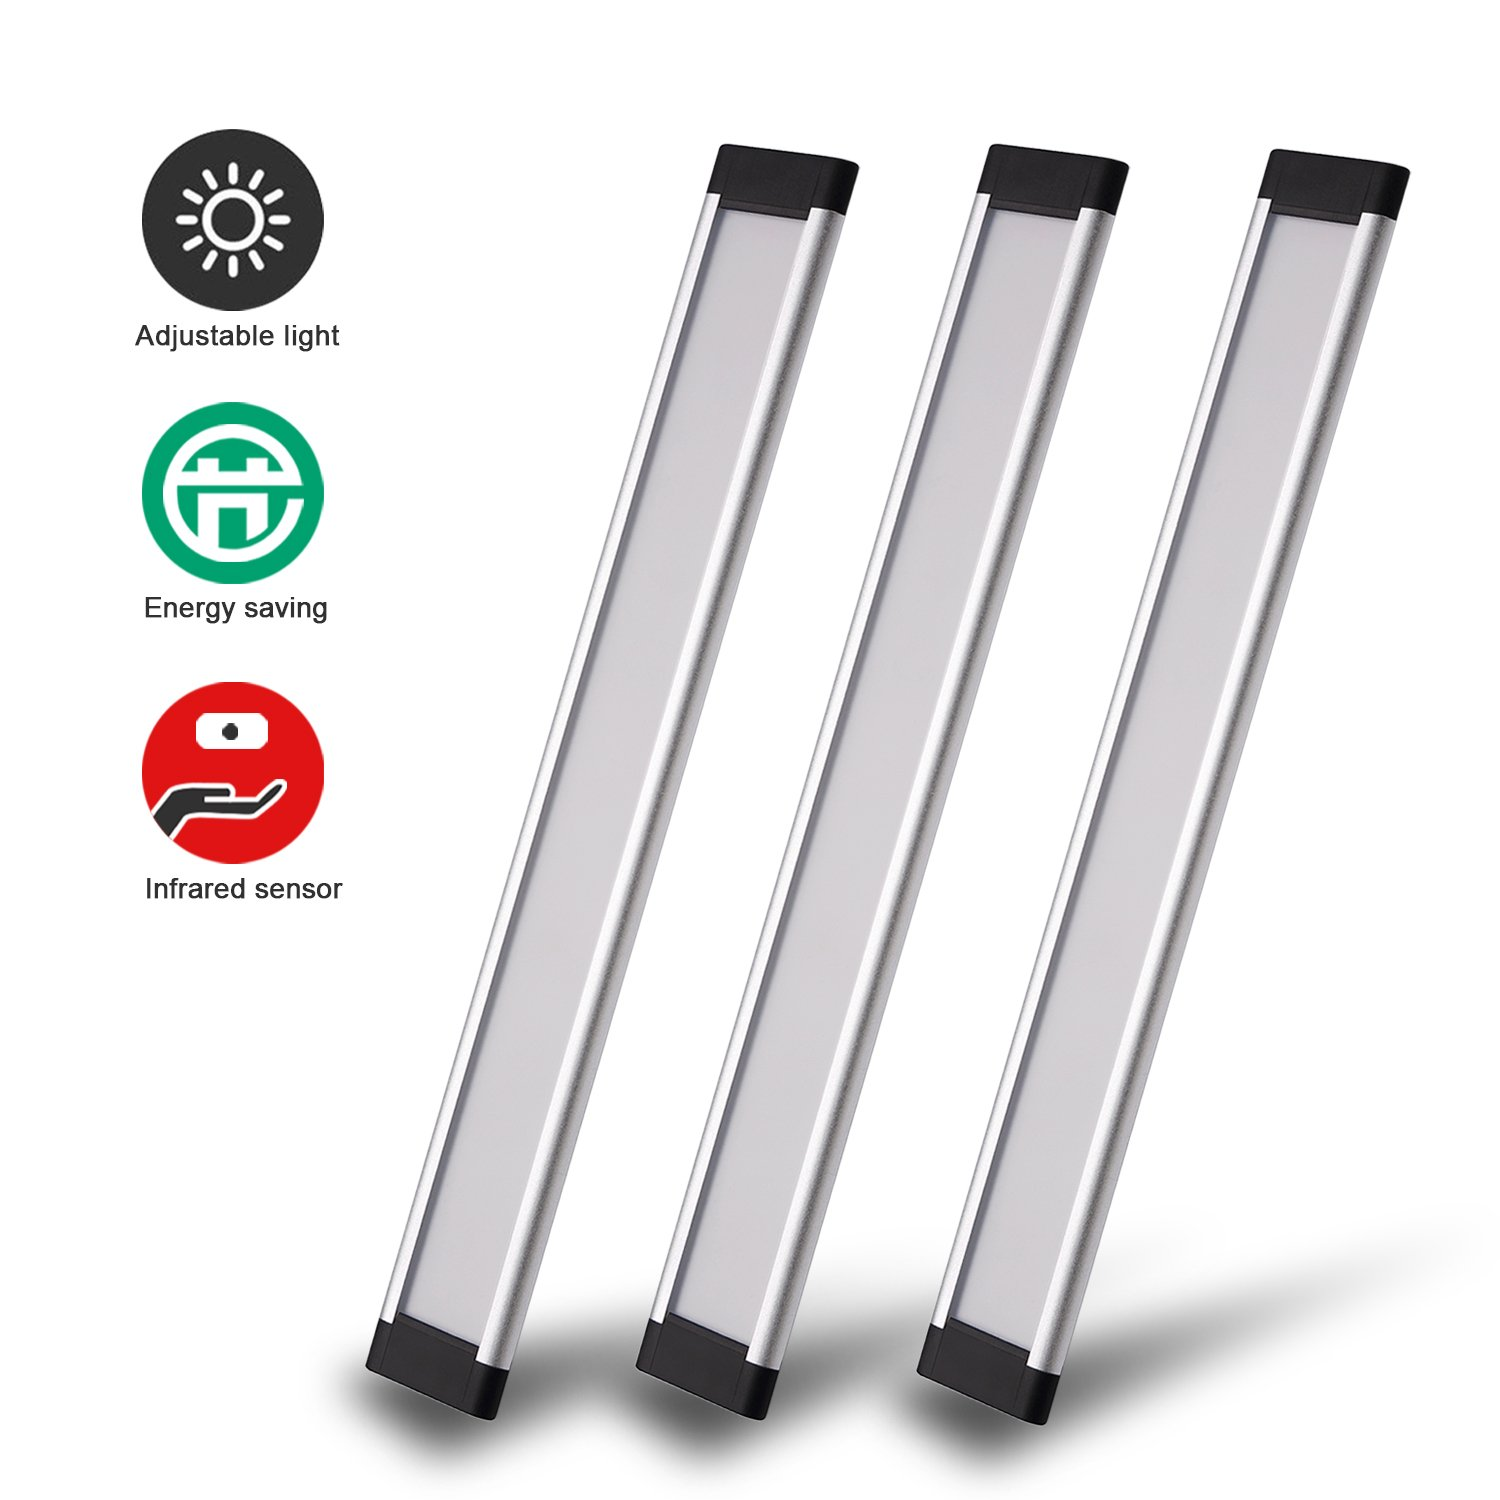 Innens LED Under Cabinet Lighting Kit, Motion Sensor Counter Light bars Daylight 6000K 100-400 lm Dimmable Plug in for Kichen Cabinets Counters (B-Daylight)